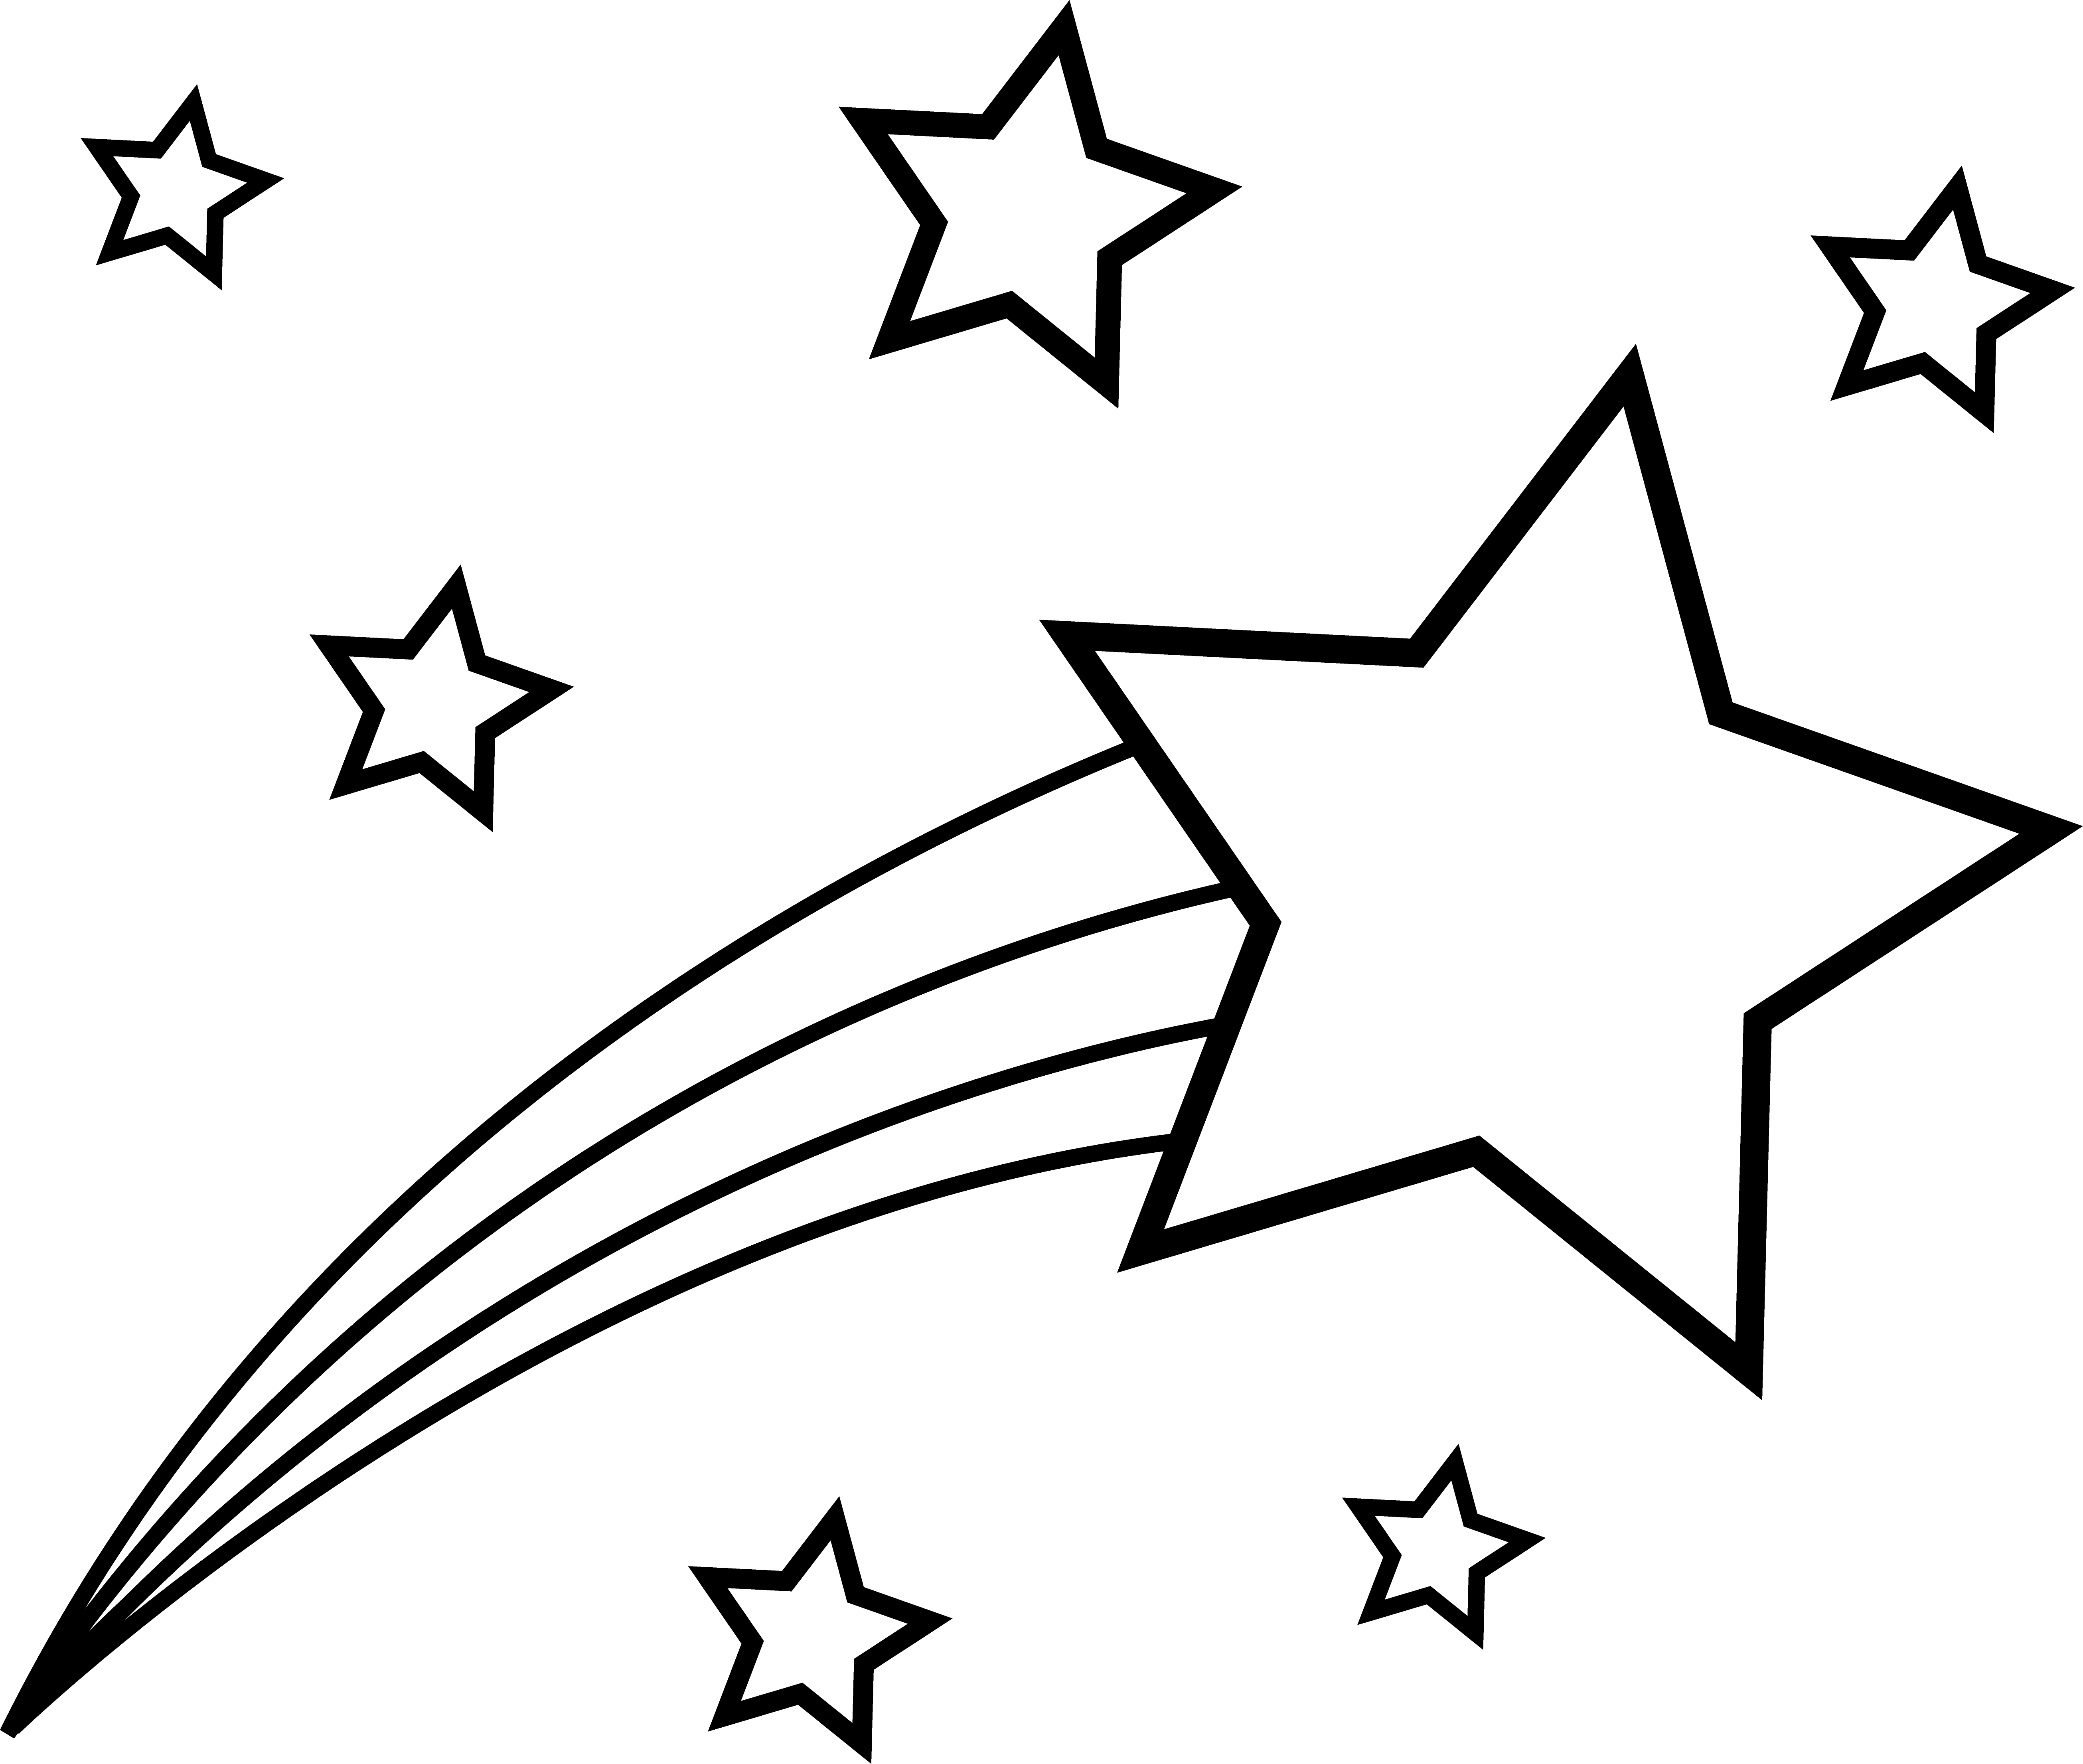 Shooting Star Clip Art Outline - Free Clipart Images